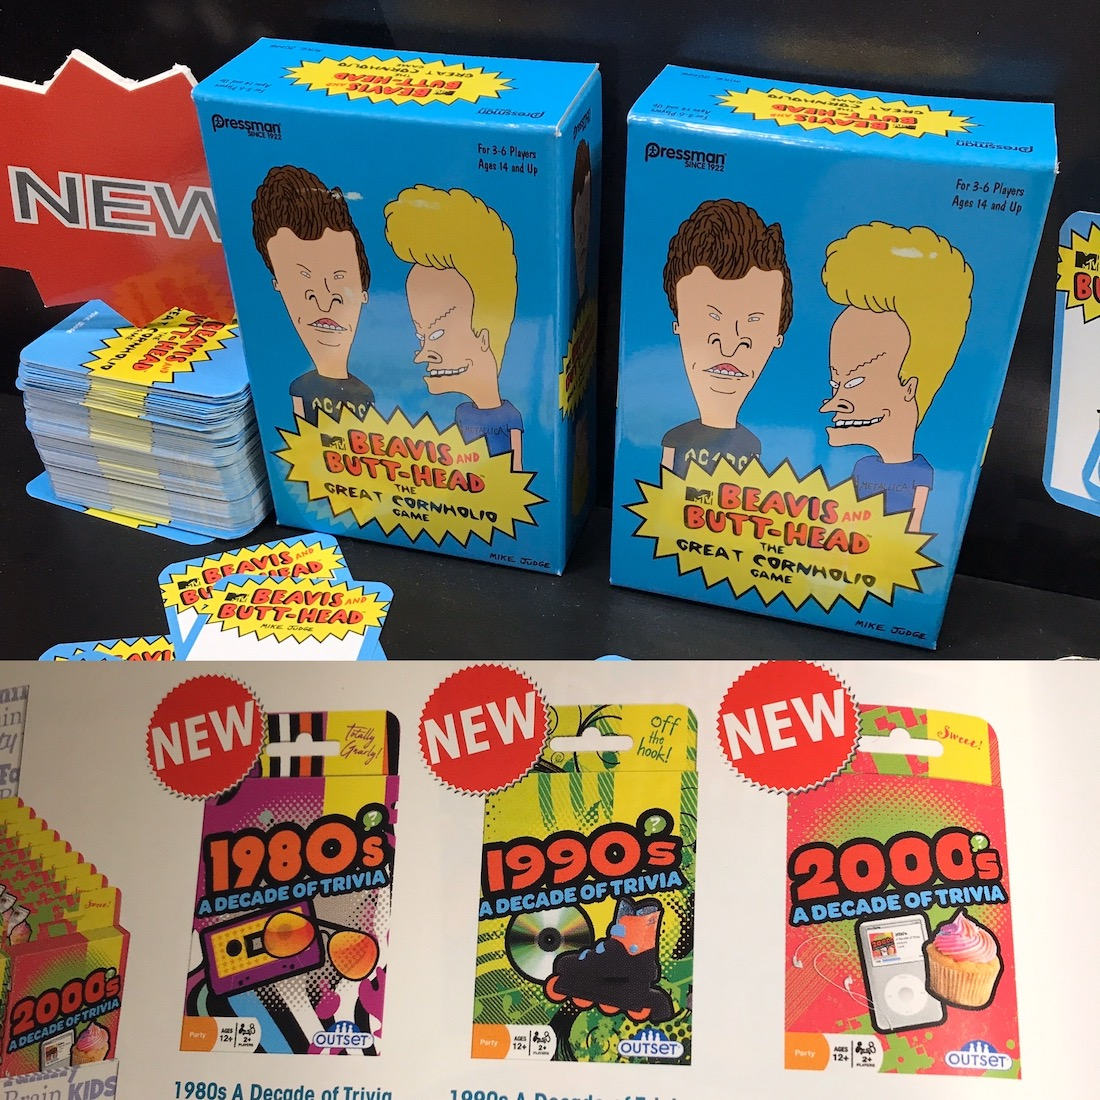 Beavis and Butthead and trivia games